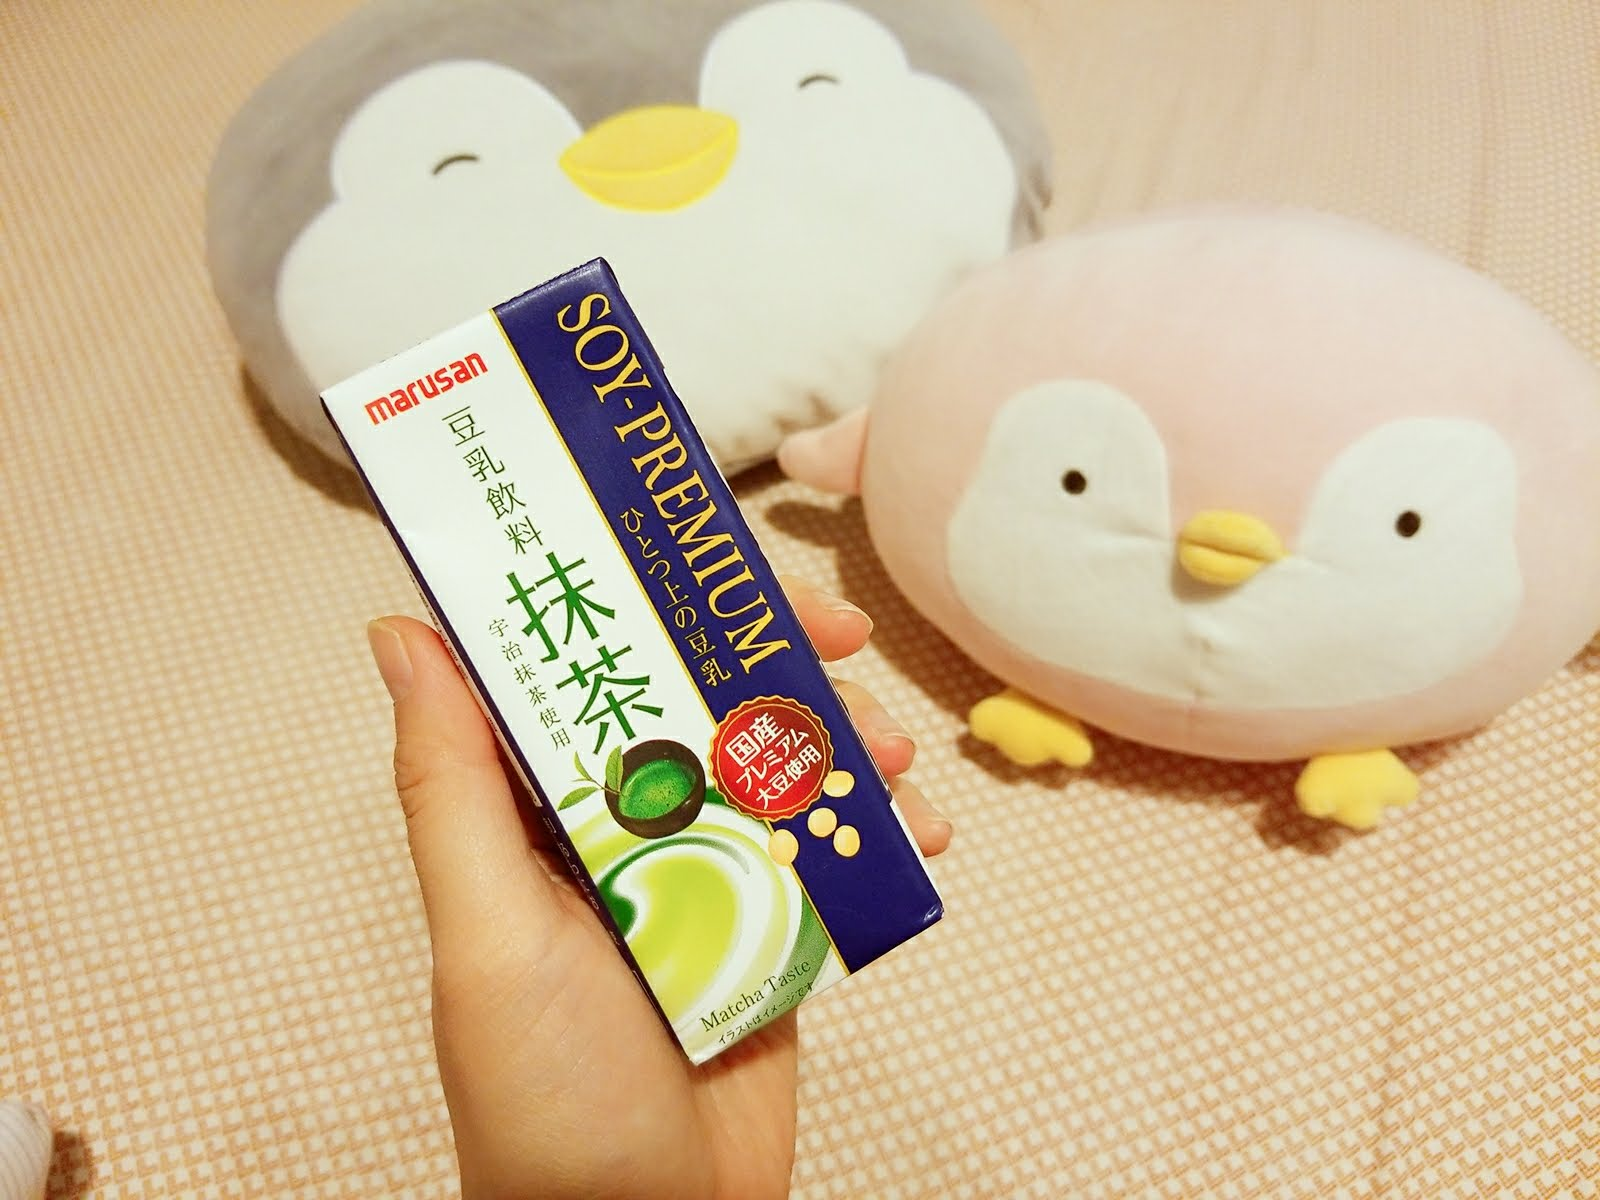 Marusan Soy-Premium Matcha Flavored Soy Milk